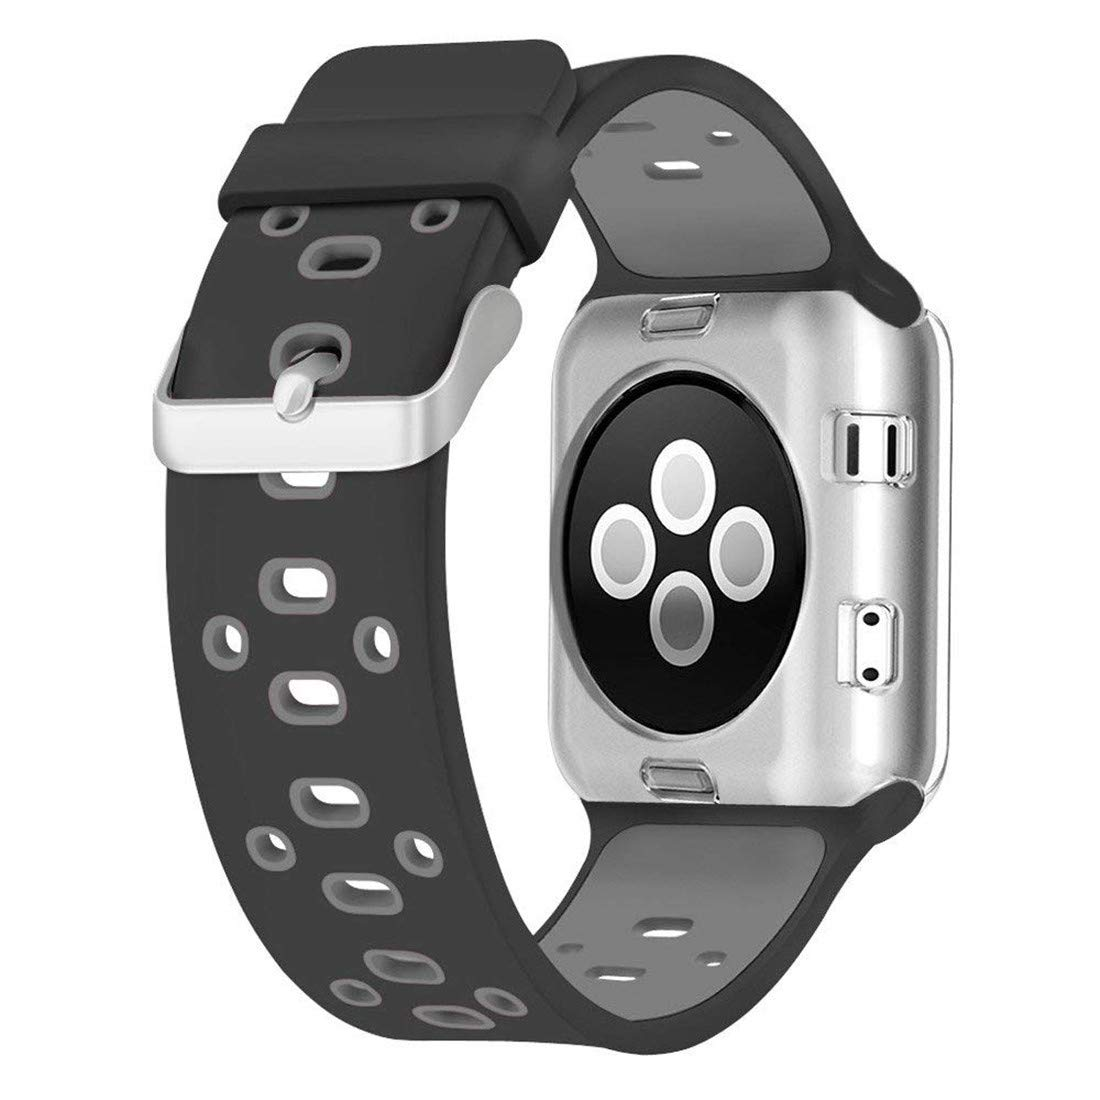 Frler Silicone Replacement Band Compatible Apple Watch Nike+, Series 3/2/1, Adjustable Breathable Watch Strap Smartwatch Fitness Wristband Watch Band